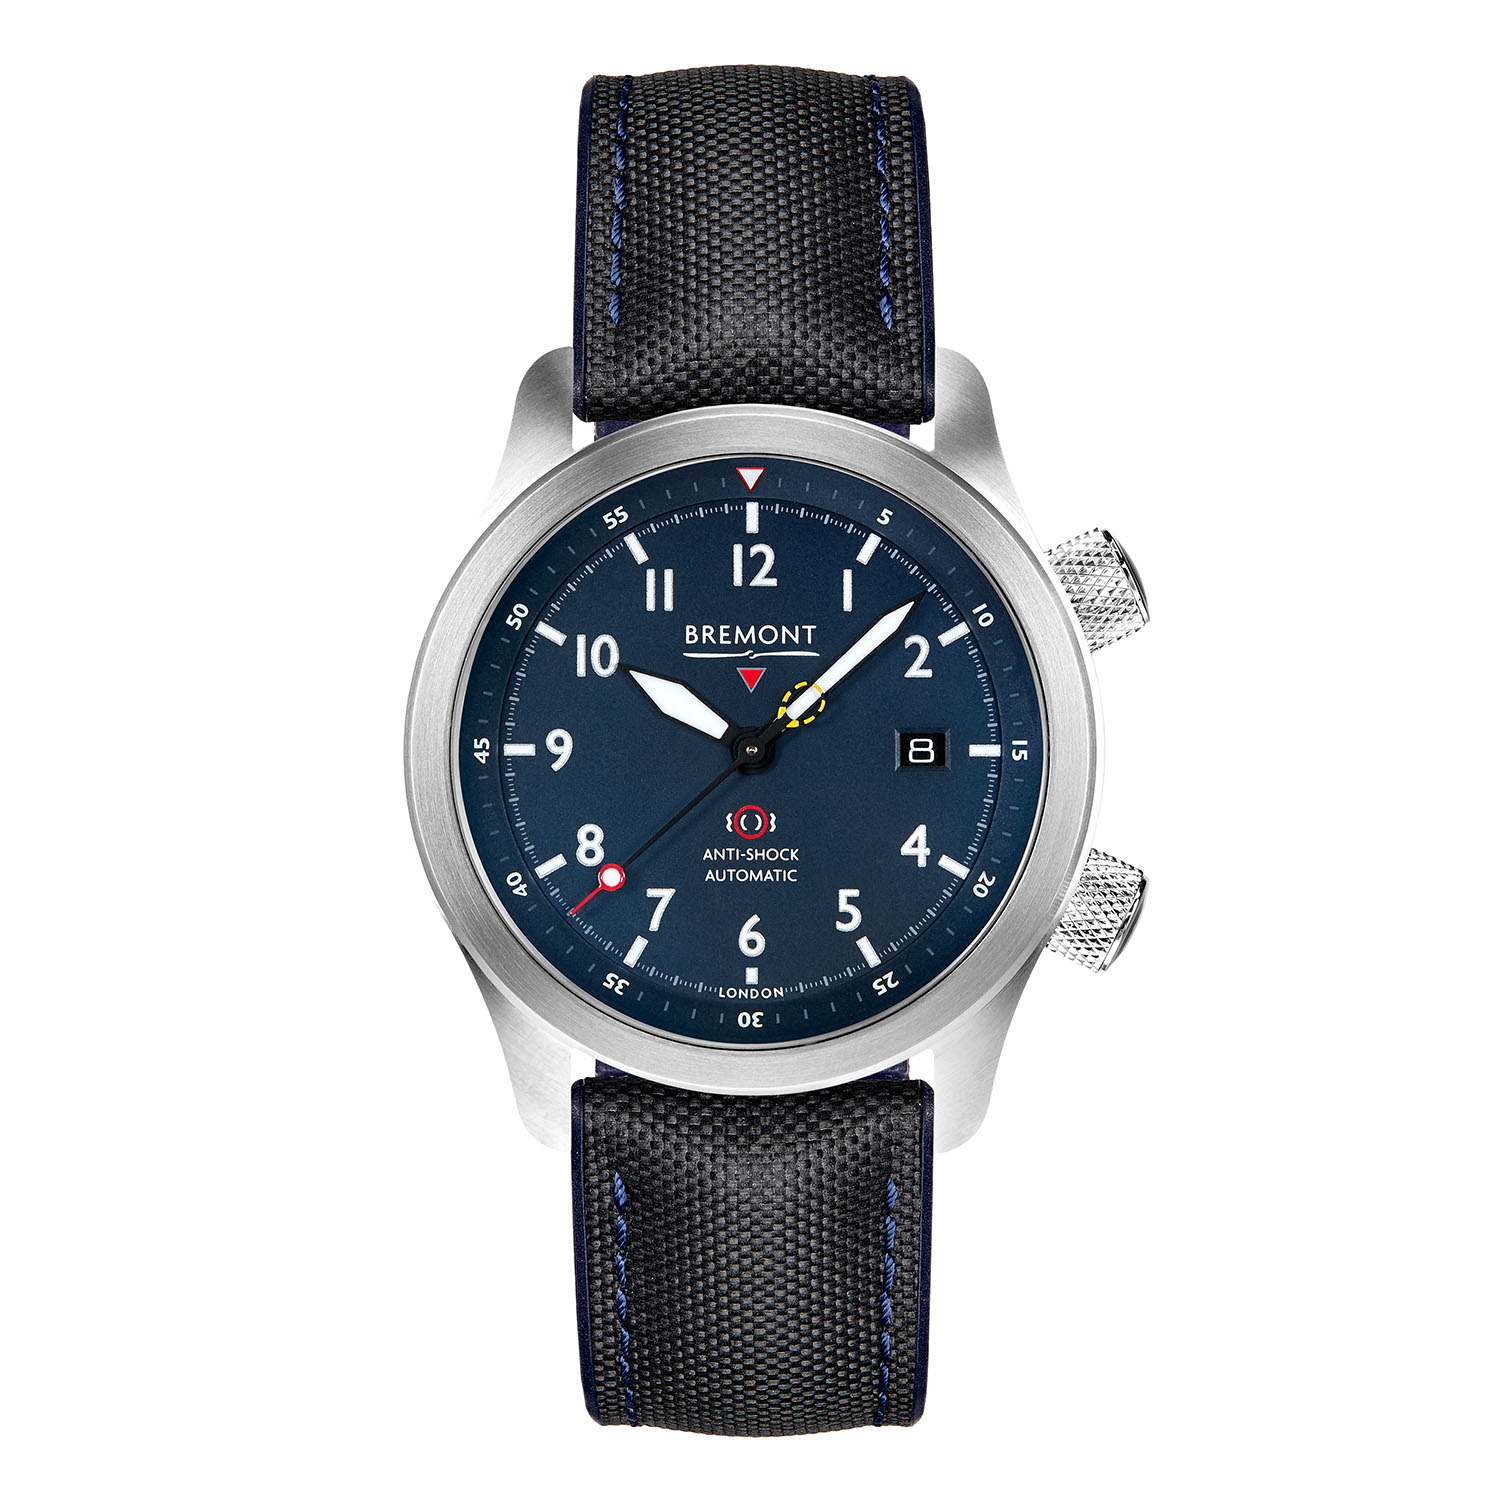 Bremont's updated 2020 MBII in the blue dial variation